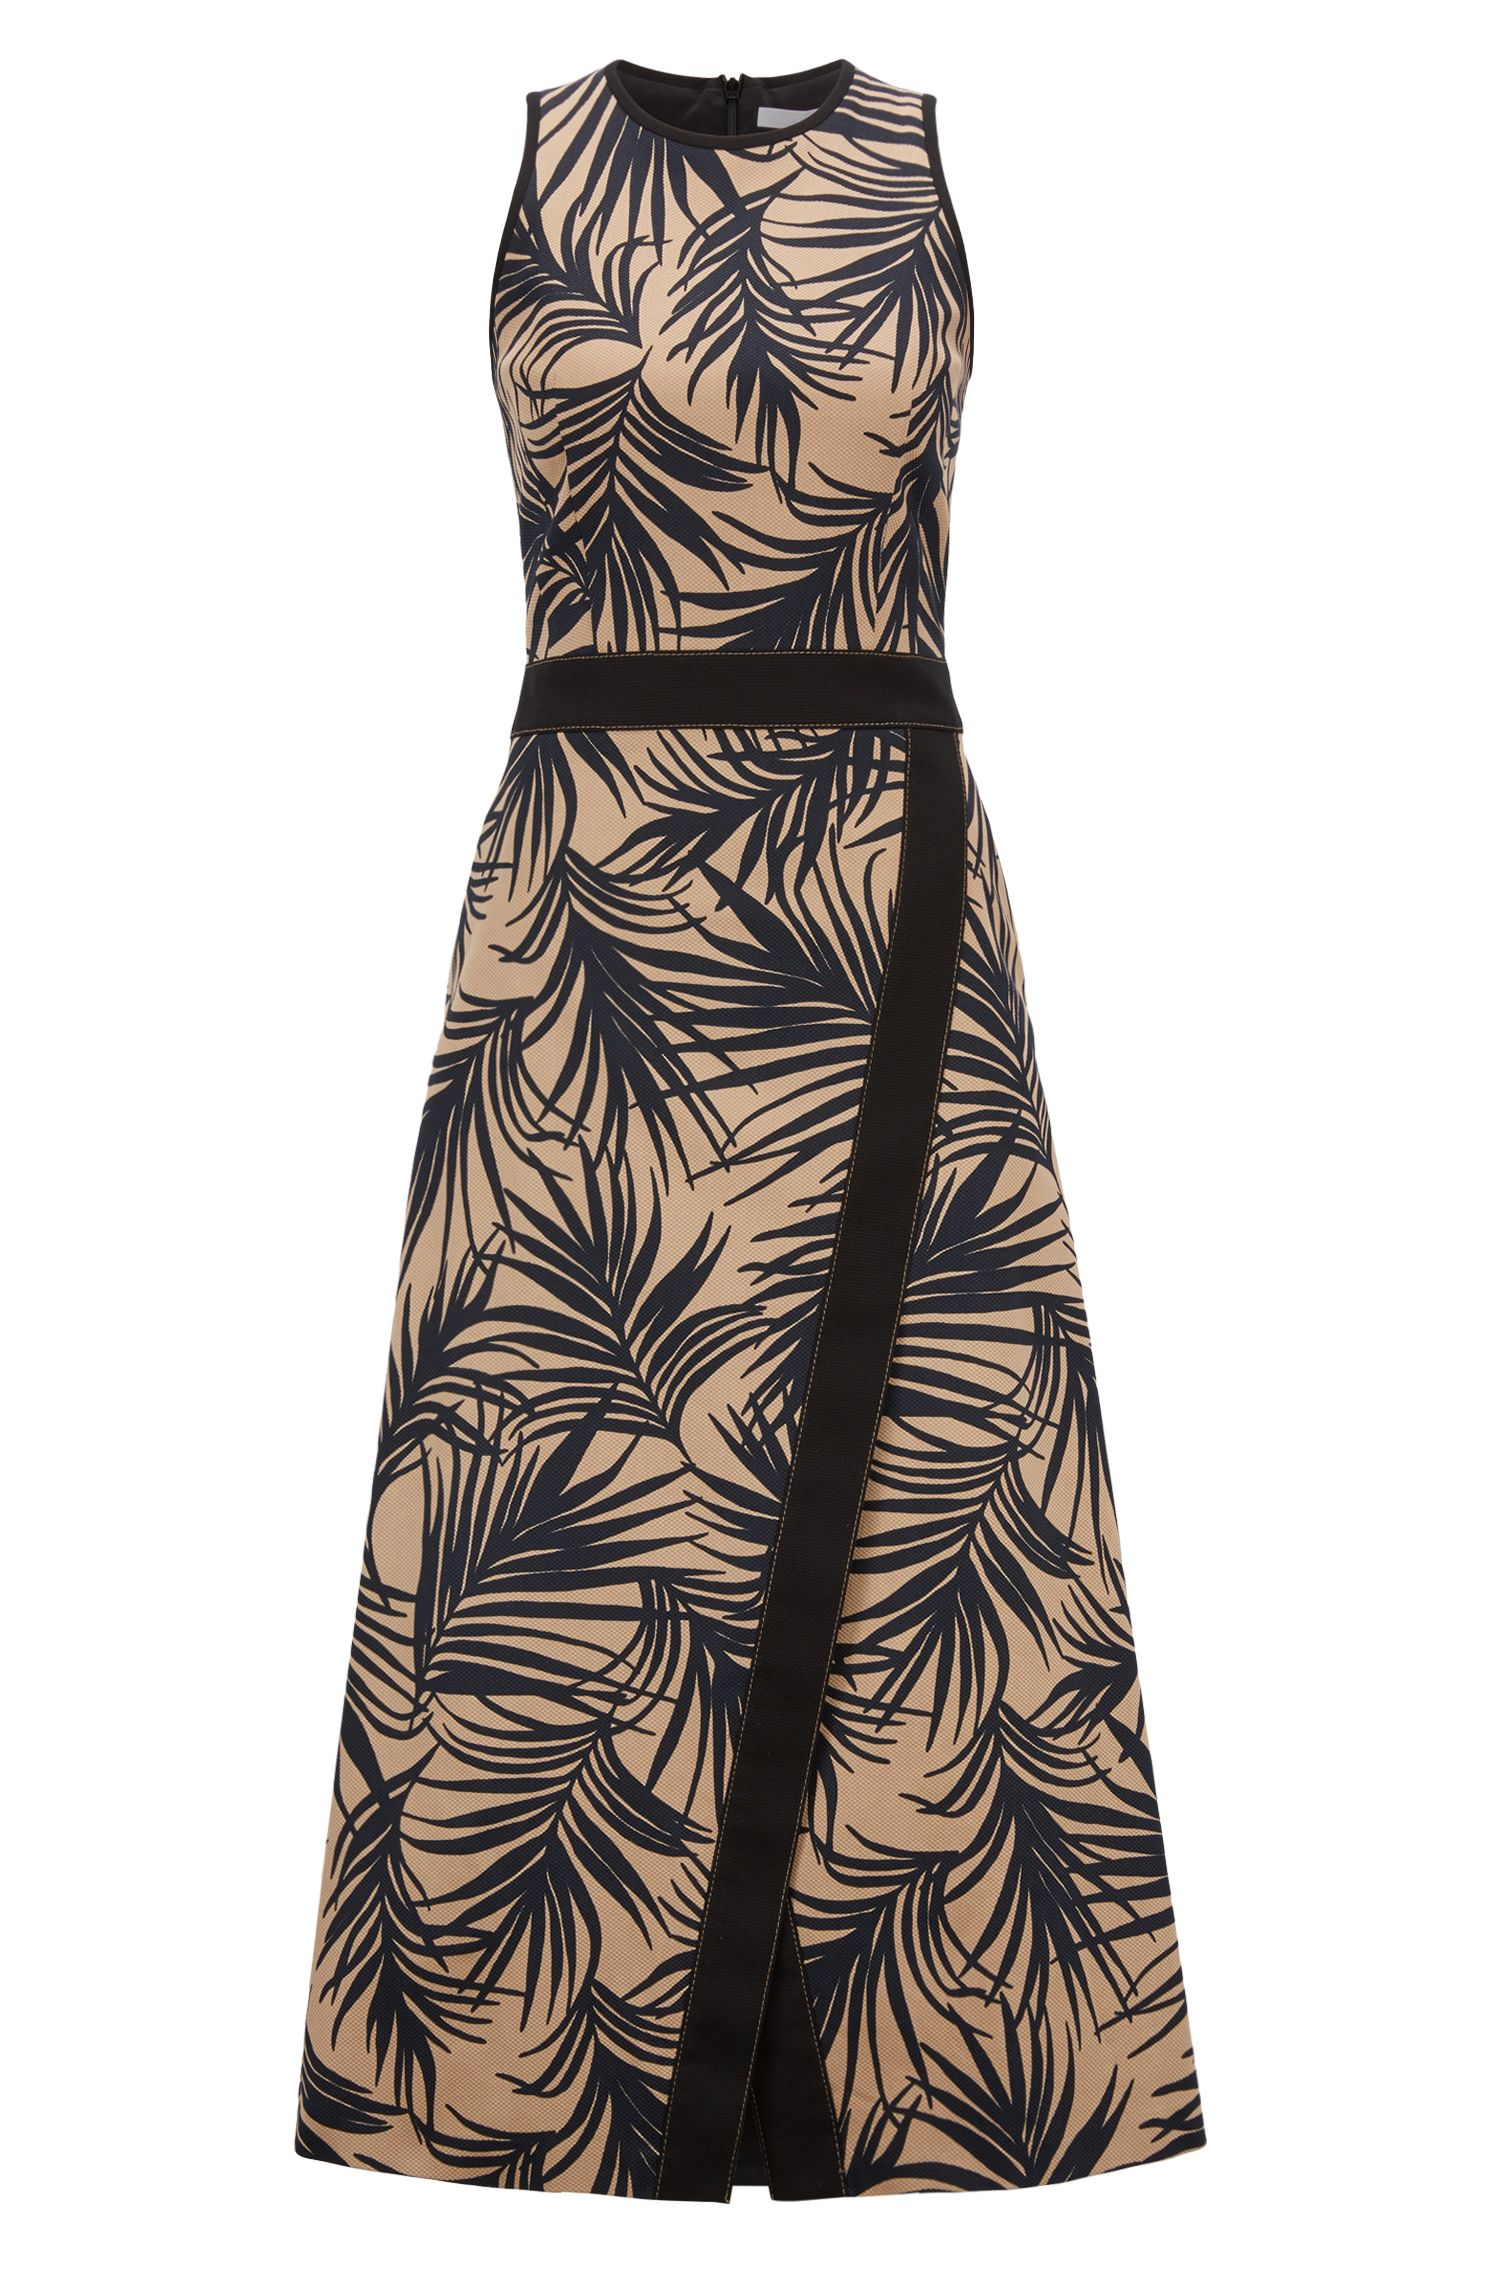 Sleeveless dress with palm-leaf-print and wrapped skirt, Patterned